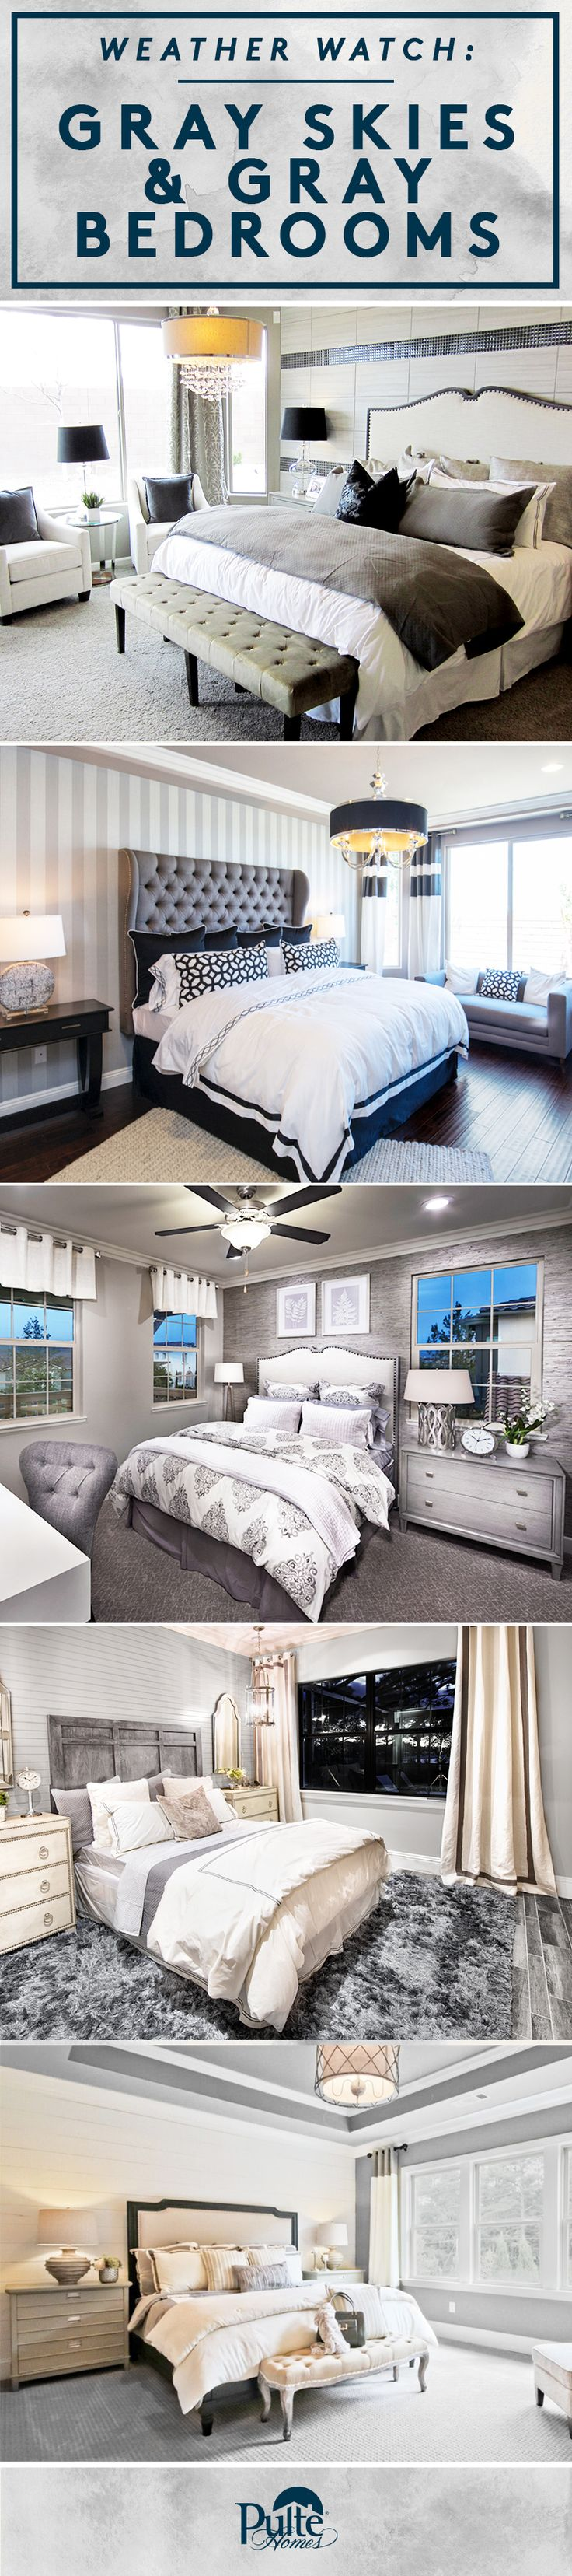 Using home decor in cool shades of